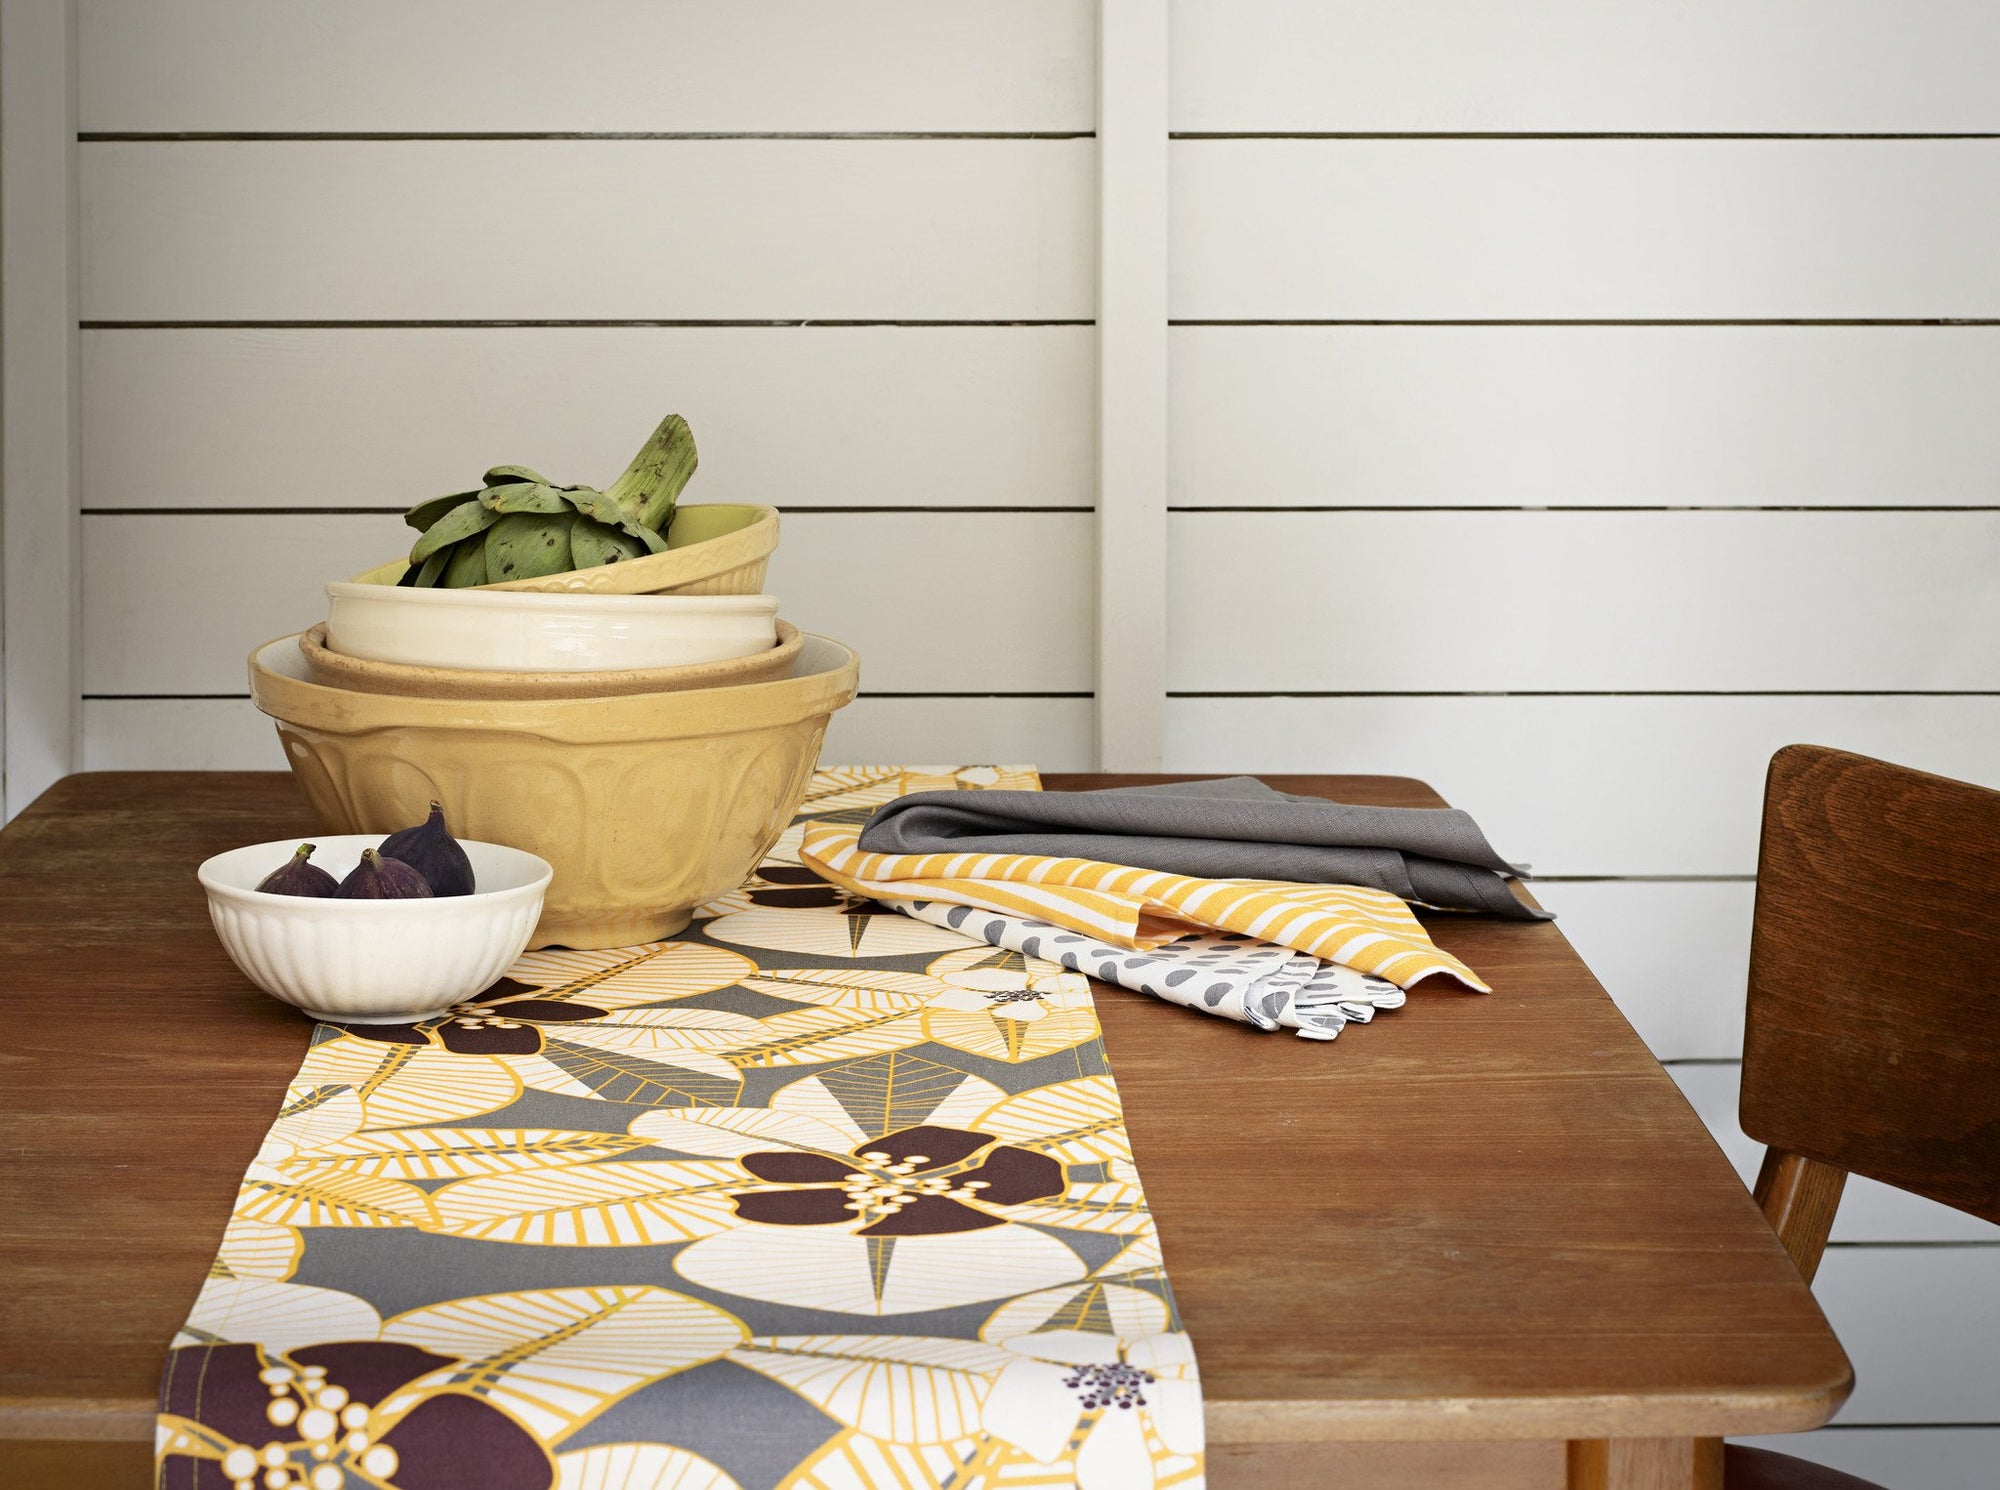 Table runners in bold modern patterns ships from Canada worldwide including the USA